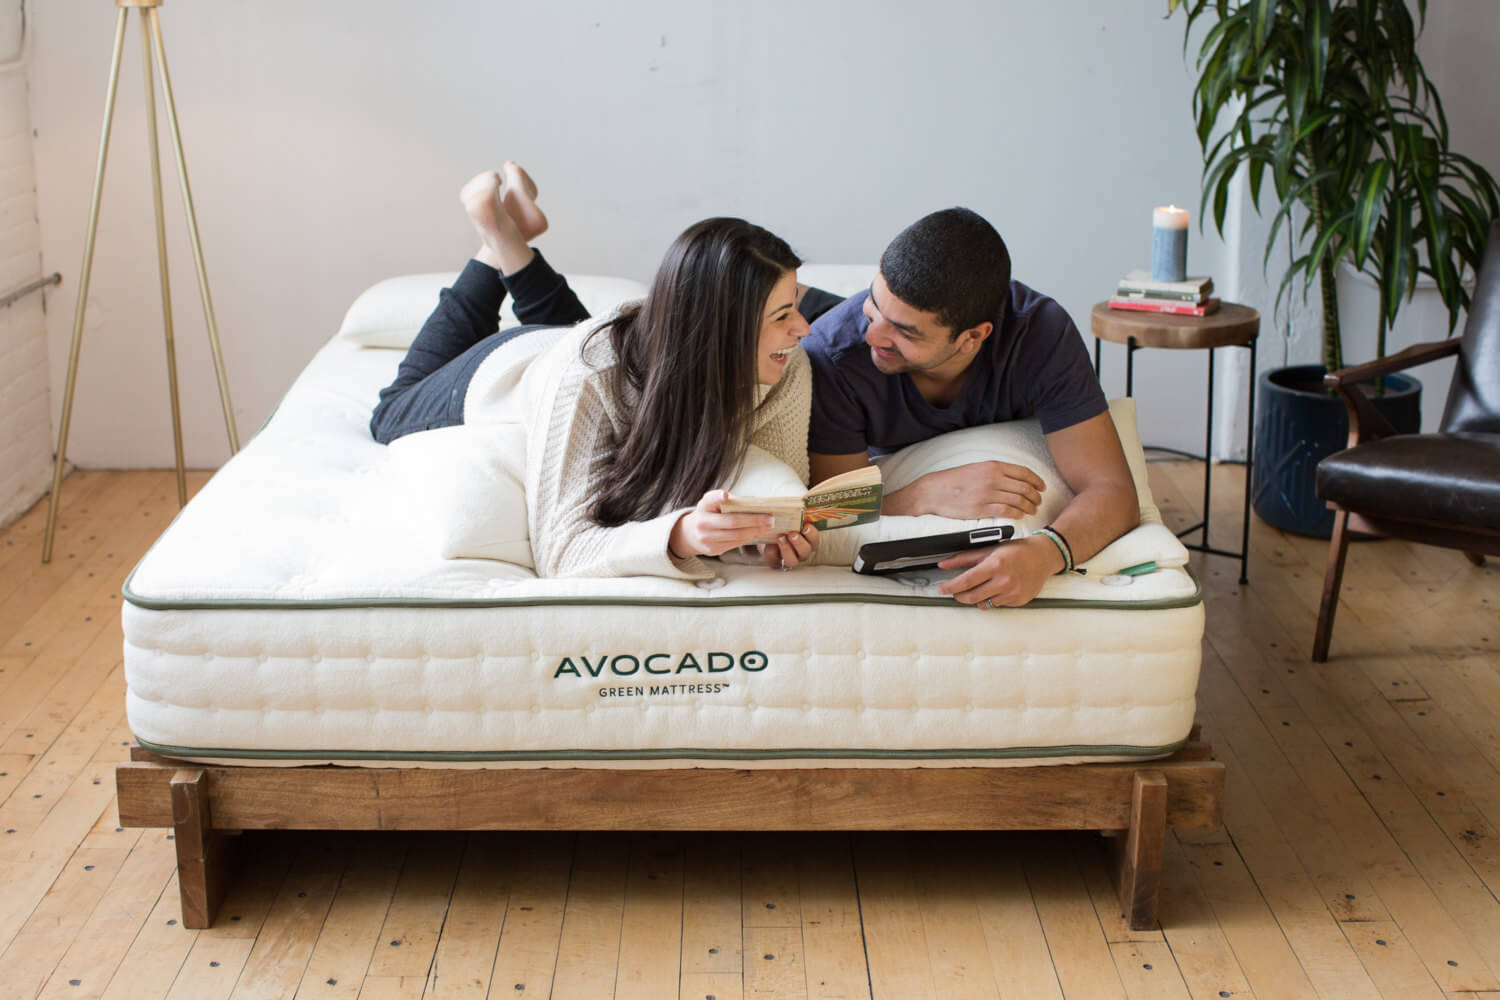 Avocado Mattress Review and In depth Analysis